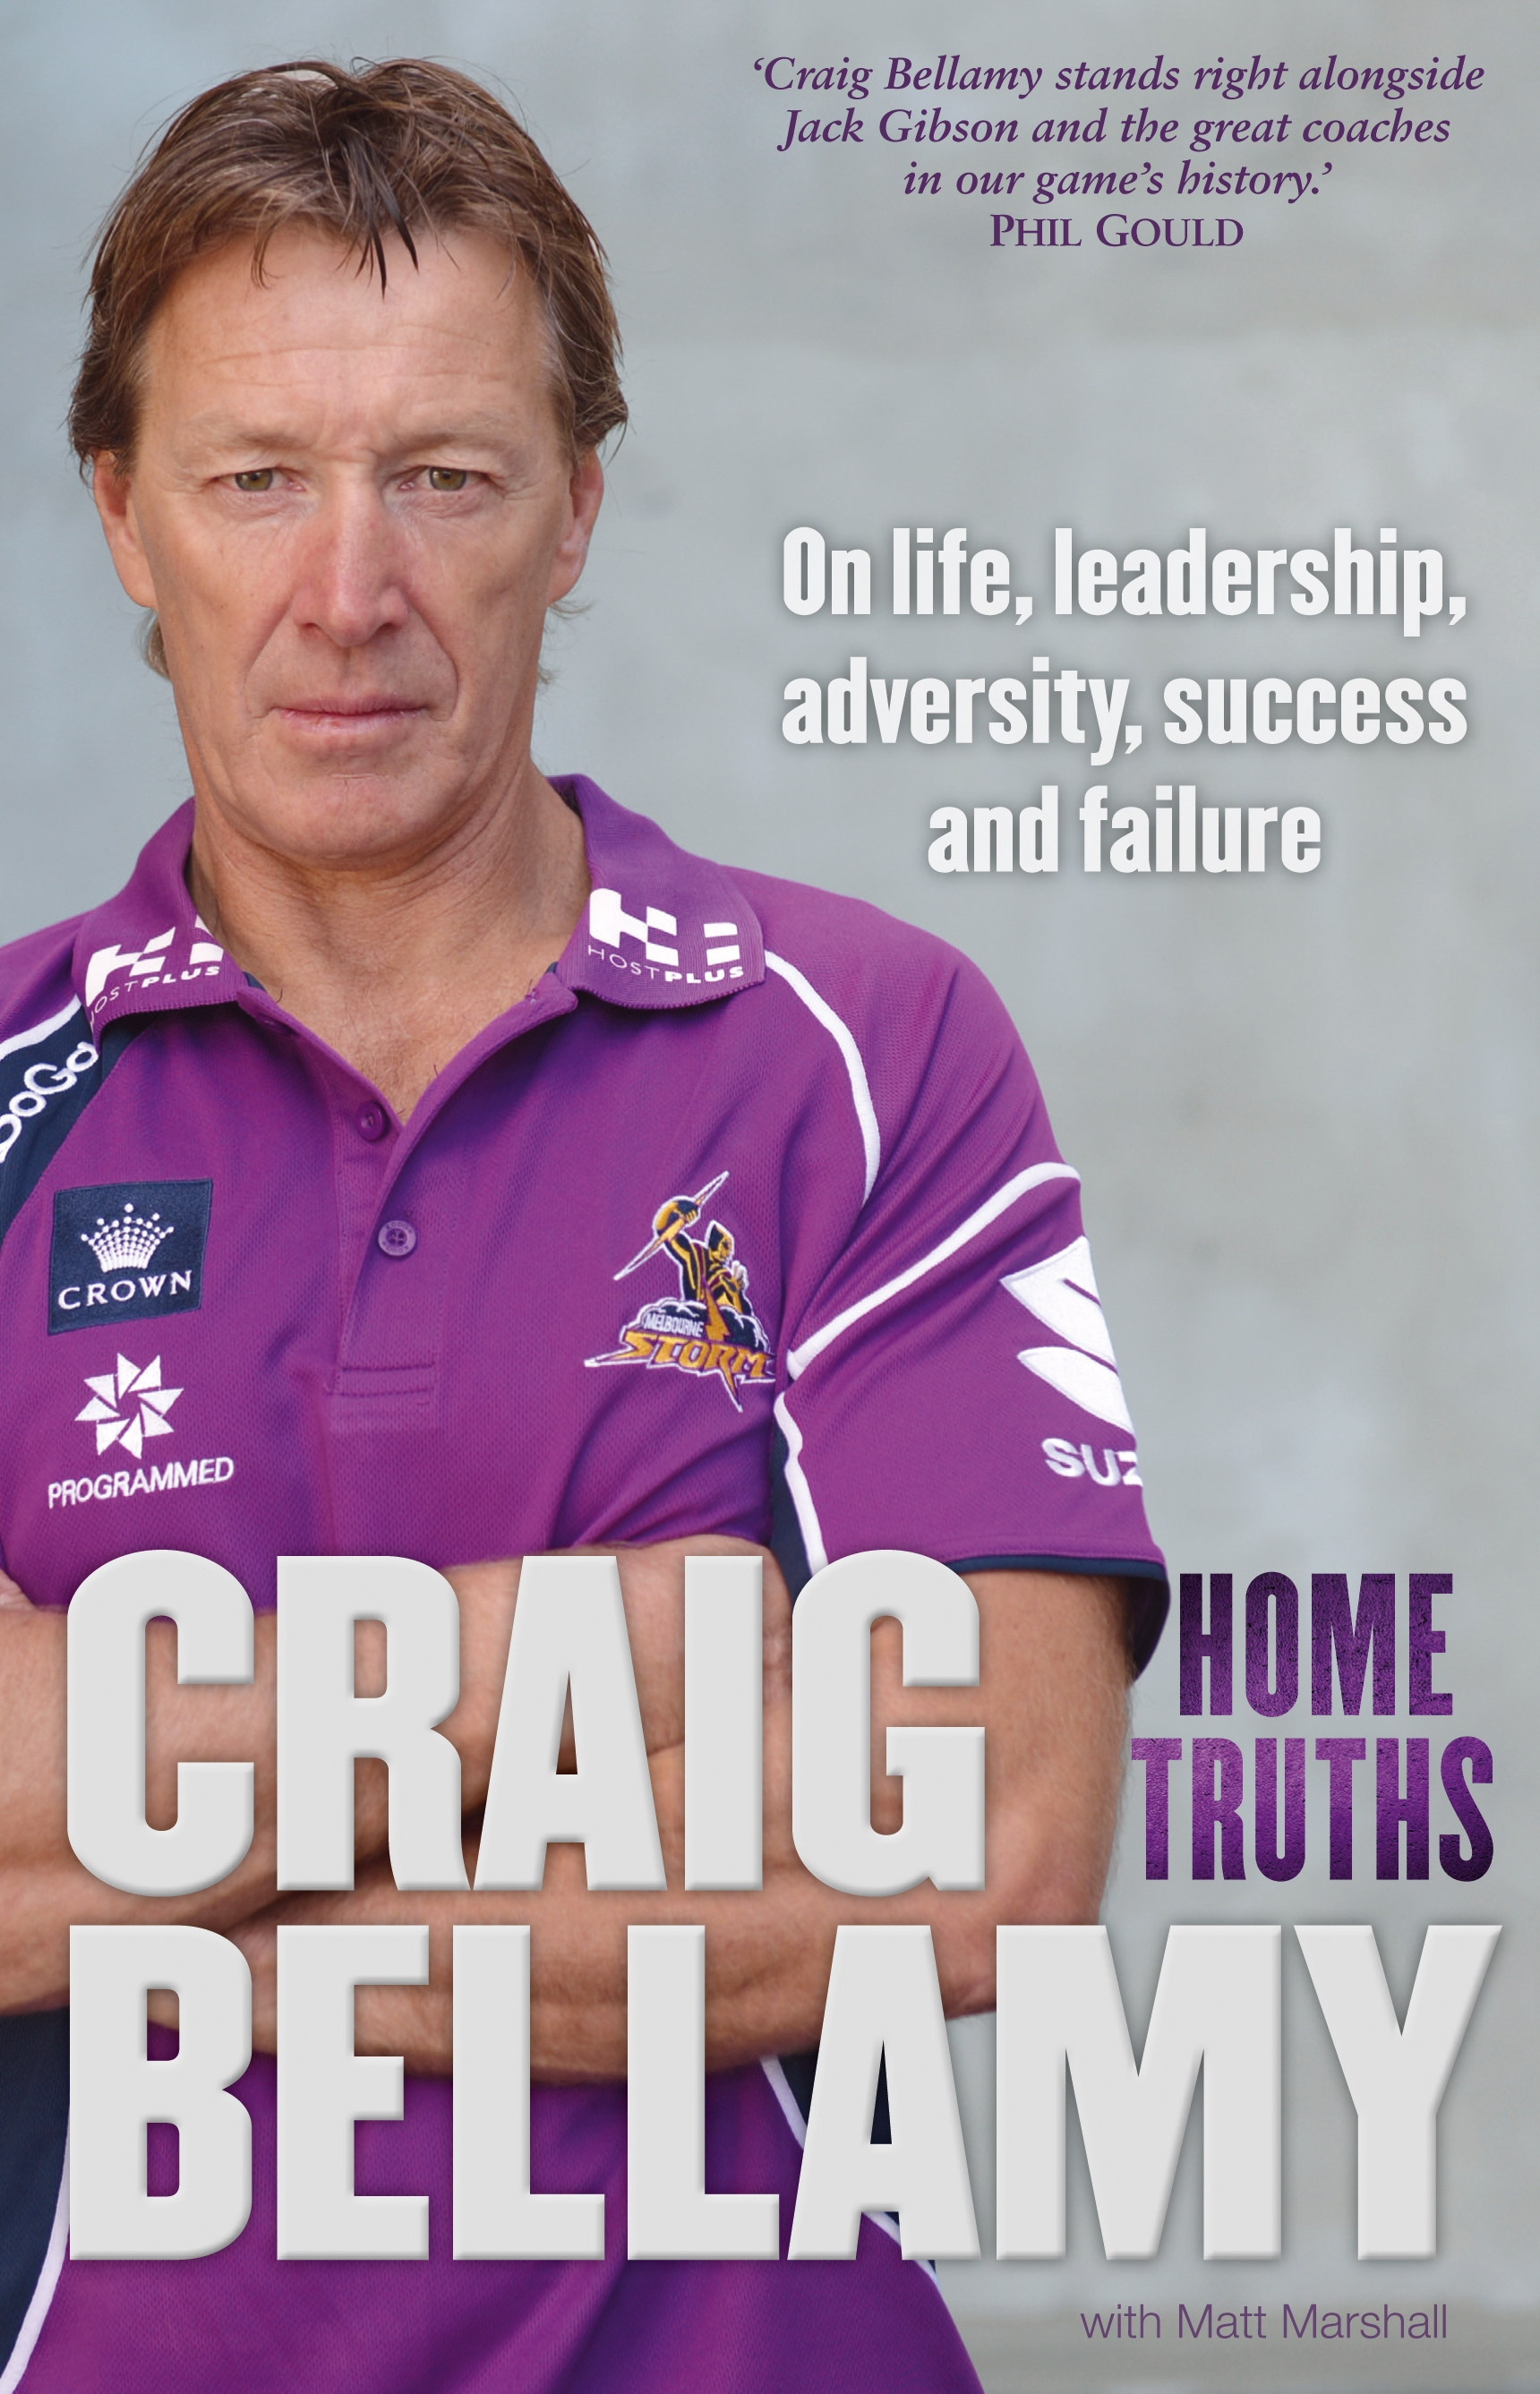 Home Truths: On Life, Leadership, Adversity, Success and Failure